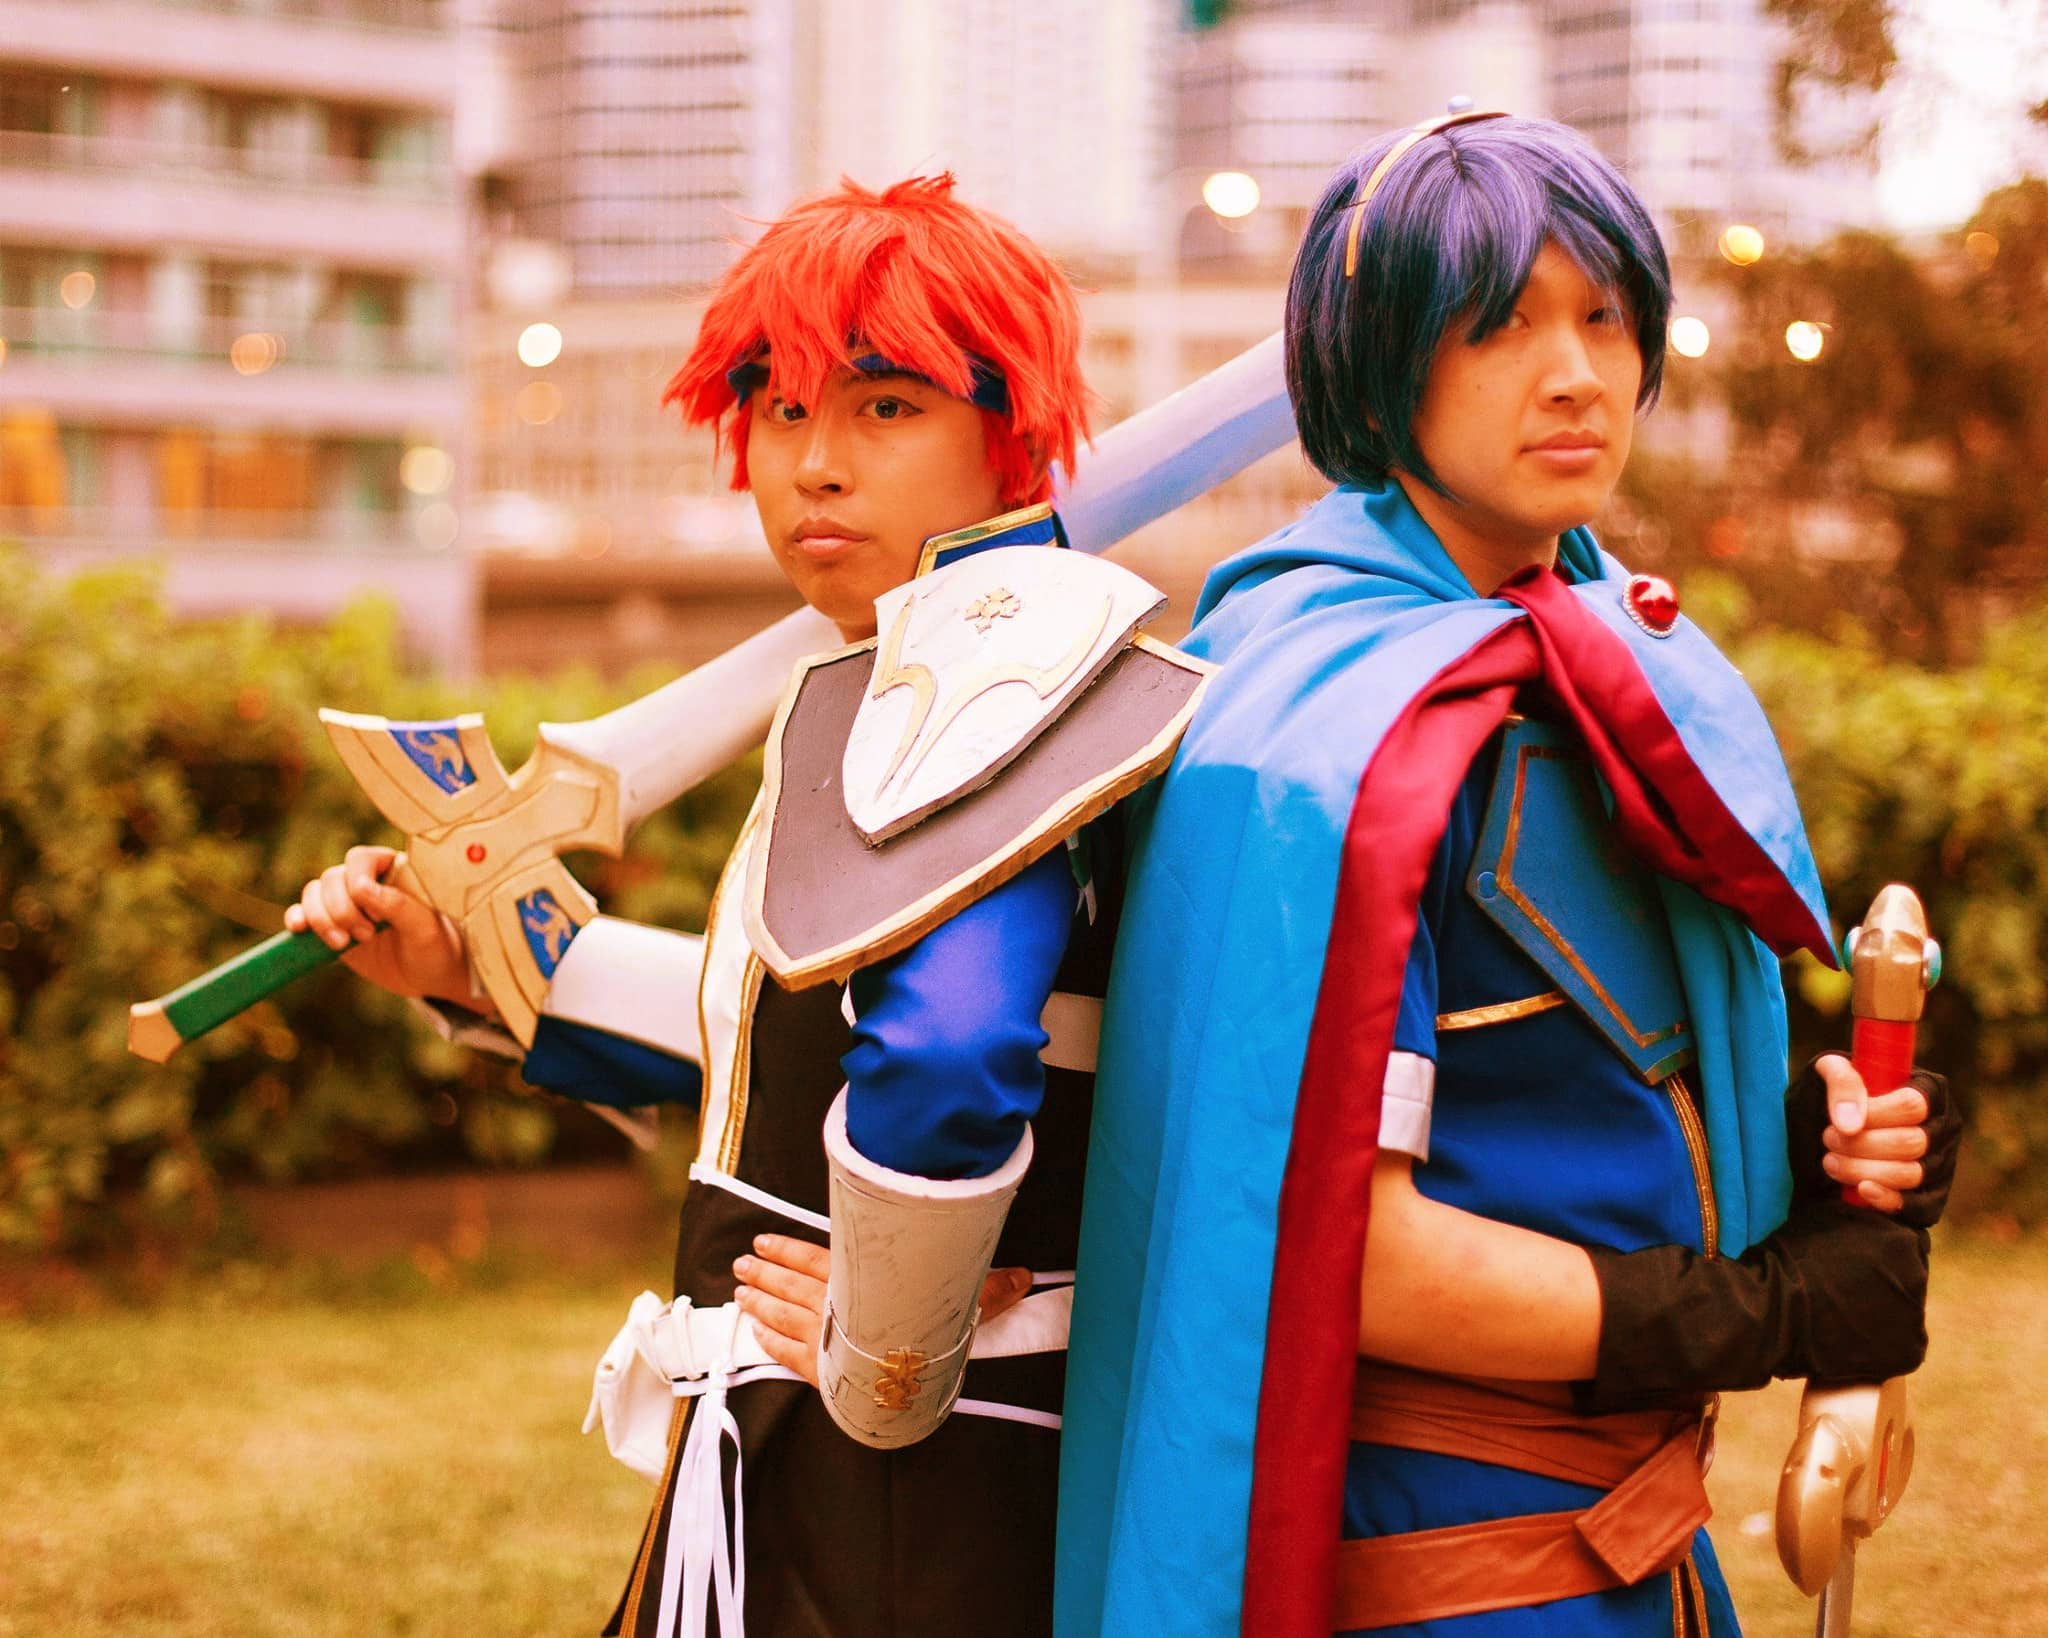 Fire Emblem cosplay photo ruined by a crappy photo filter!